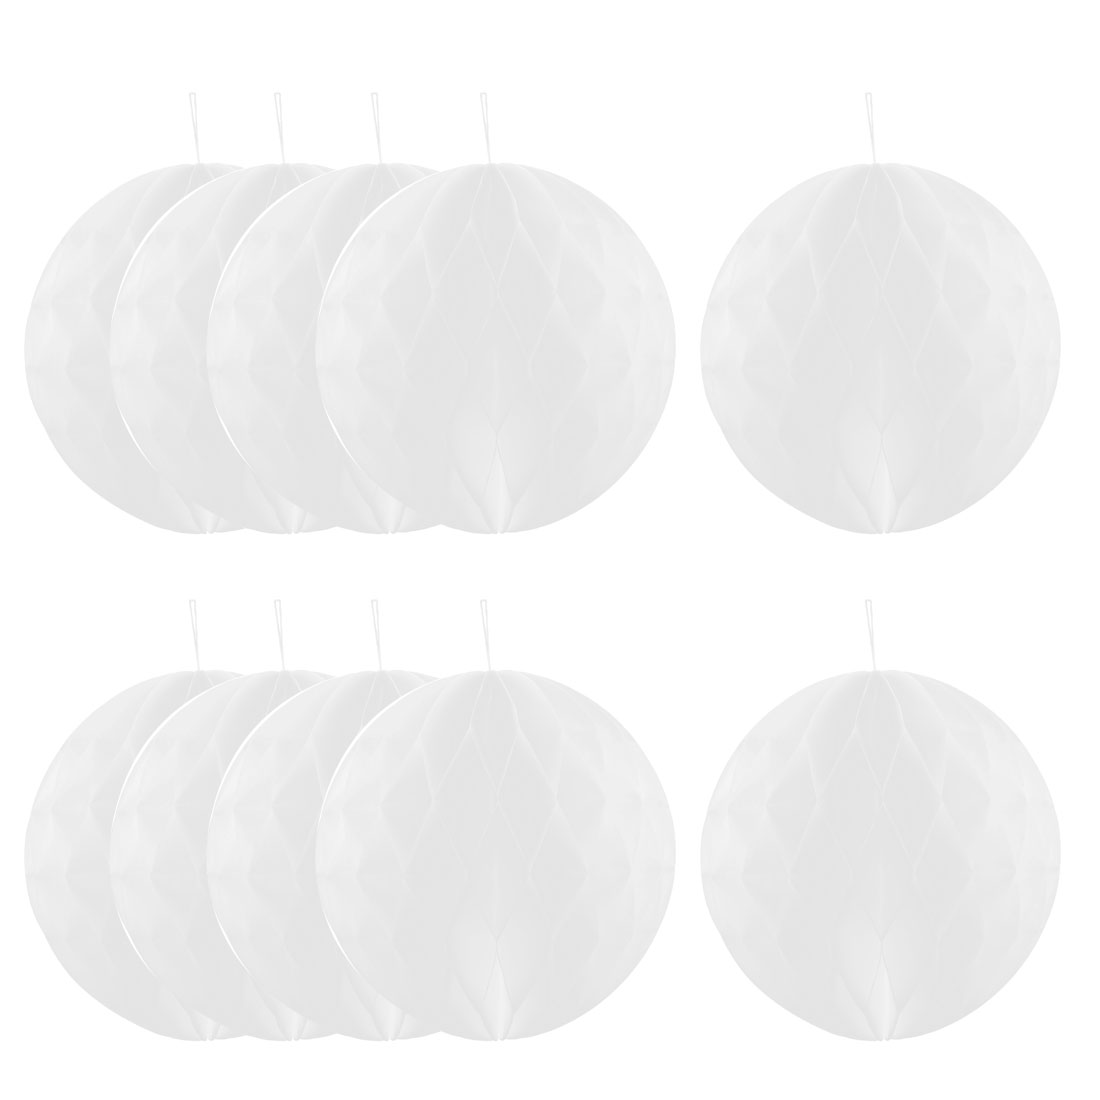 Home Paper Wall Window Hanging Decor Lantern Honeycomb Ball White 10 Inch Dia 10 Pcs